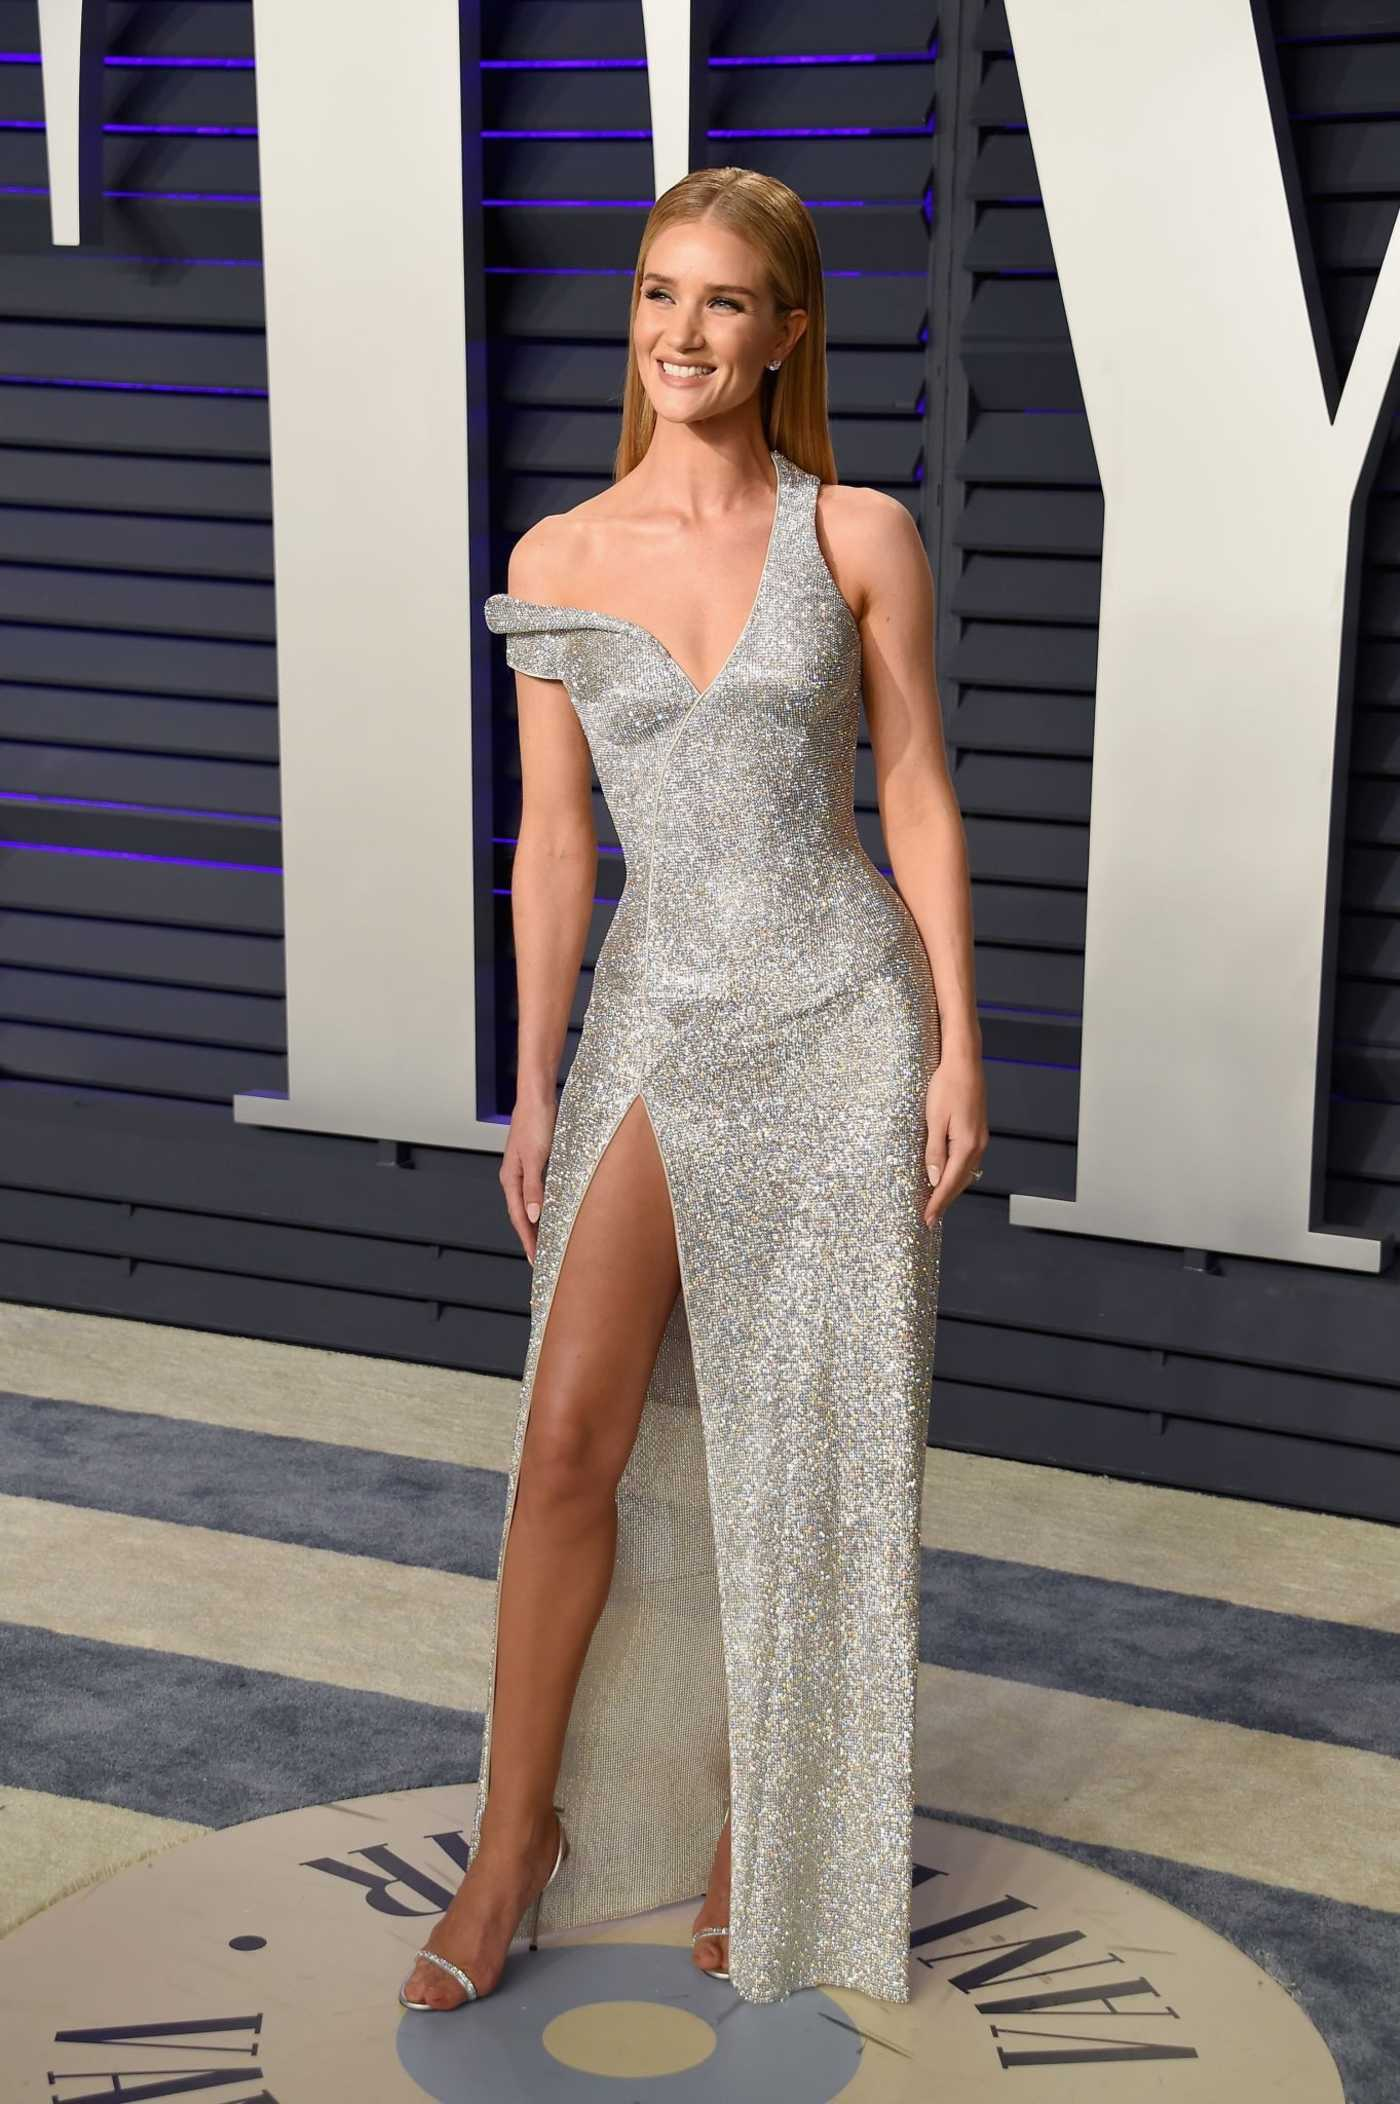 Rosie Huntington-Whiteley Attends 2019 Vanity Fair Oscar Party in Beverly Hills 02/24/2019